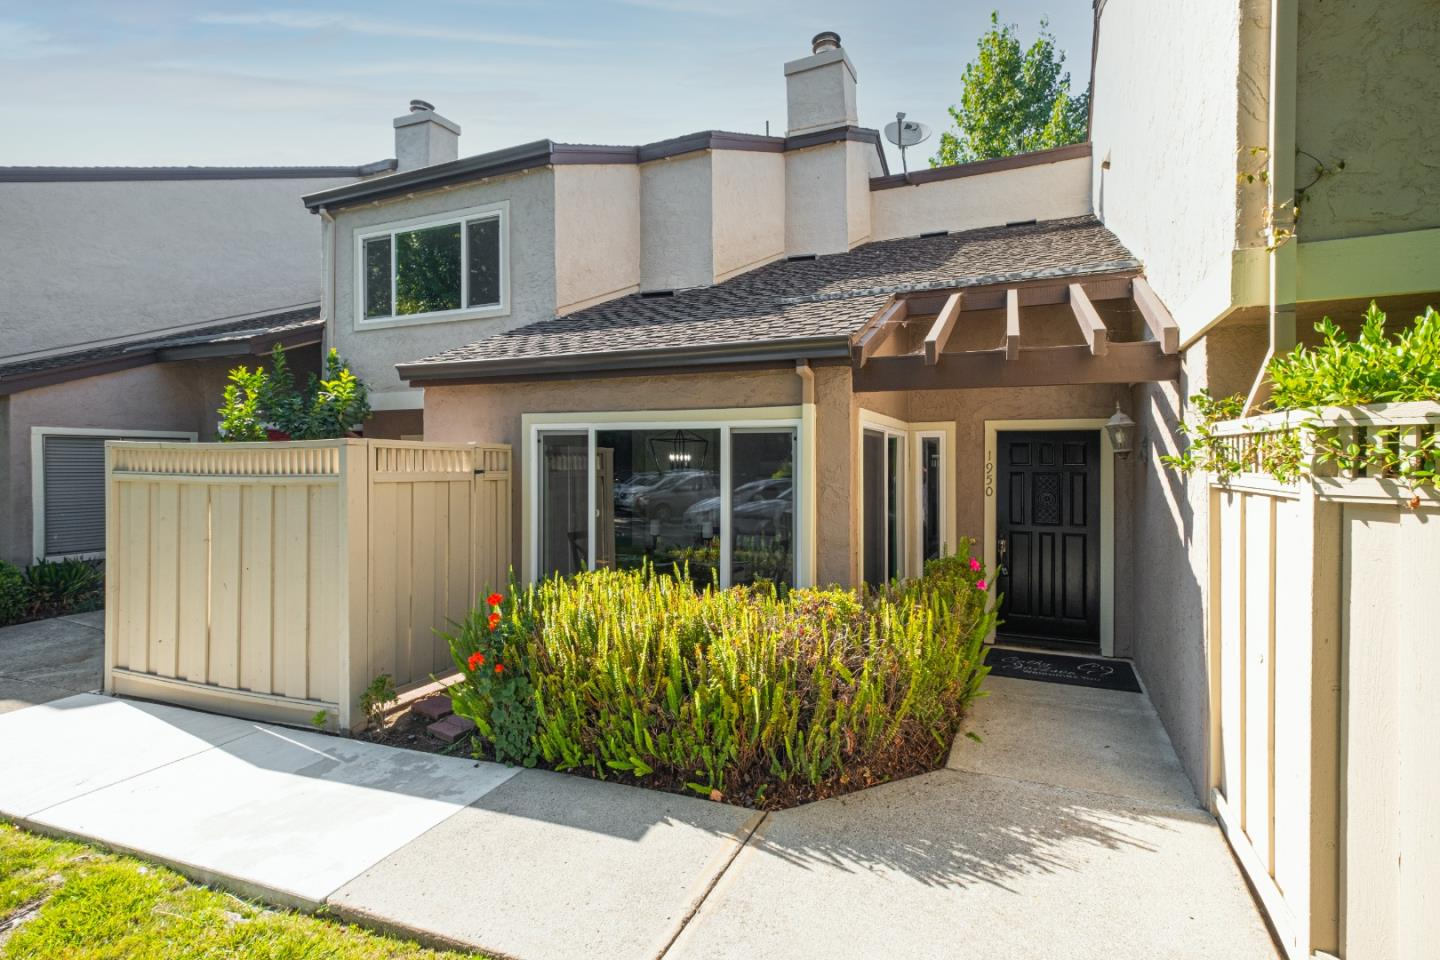 Your Modern Lifestyle in Los Gatos Estates Awaits. Welcome Home to 1950 Las Encinas Ct. A newly remodeled 3 bedroom, 3 full baths and large den with access to the outside. This townhome has a single family home feel with a spacious floor plan,  vaulted ceilings, large windows wrap the dinning area welcoming abundant natural light into your home. Other features include AC, fireplace in the living room, a private study perfectly situated for working from home, laundry, and two private patios to soak in the sun. The spacious master suite has a large walk in closet and a master bathroom with dual vanity and a sunken tub. Two additional bedrooms with mirrored closet doors and a full bath complete the second level. The complex features lush walkways throughout the grounds, tennis court, pool, and spa. Top ranked Marshall Lane Elementary, Rolling Hills Middle, Westmont High (buyer to verify). Complex is adjacent to Rolling Hills Middle School and Rinconada Shopping Center.